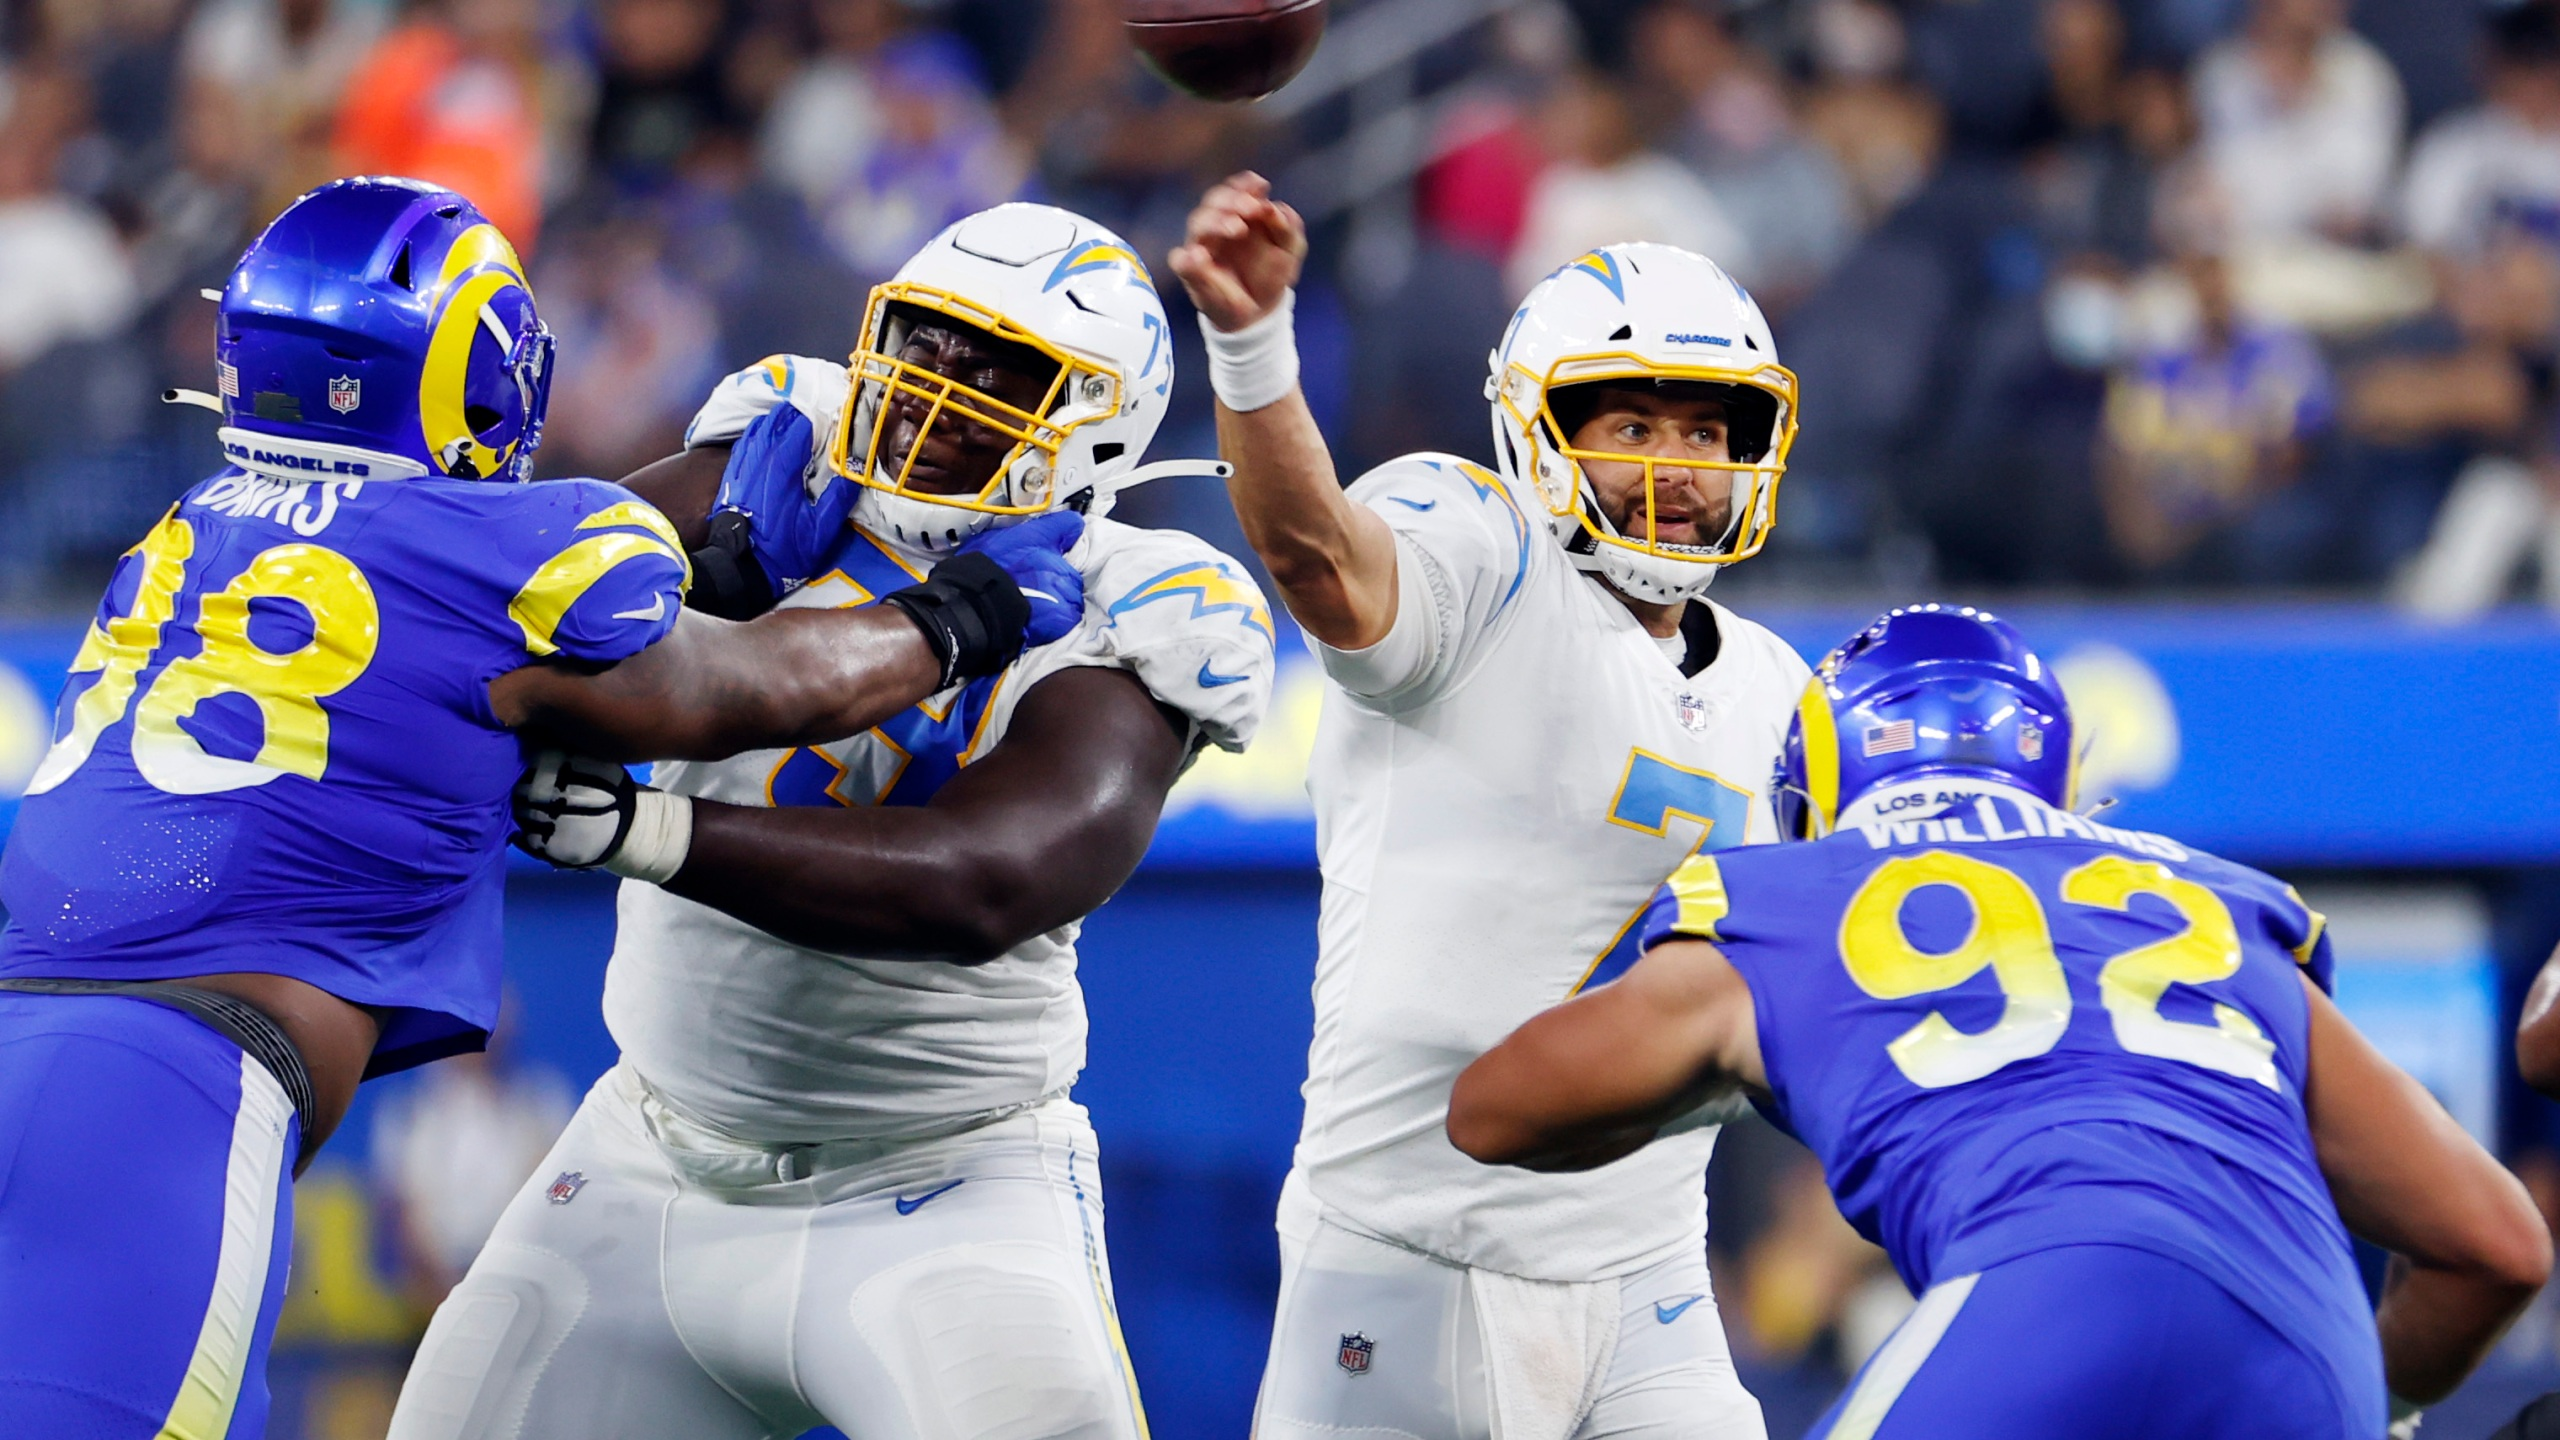 Los Angeles Chargers quarterback Chase Daniel (7) throws a pass against the Los Angeles Rams during the first half of a preseason NFL football game Saturday, Aug. 14, 2021, in Inglewood, Calif. (AP Photo/Ringo H.W. Chiu)